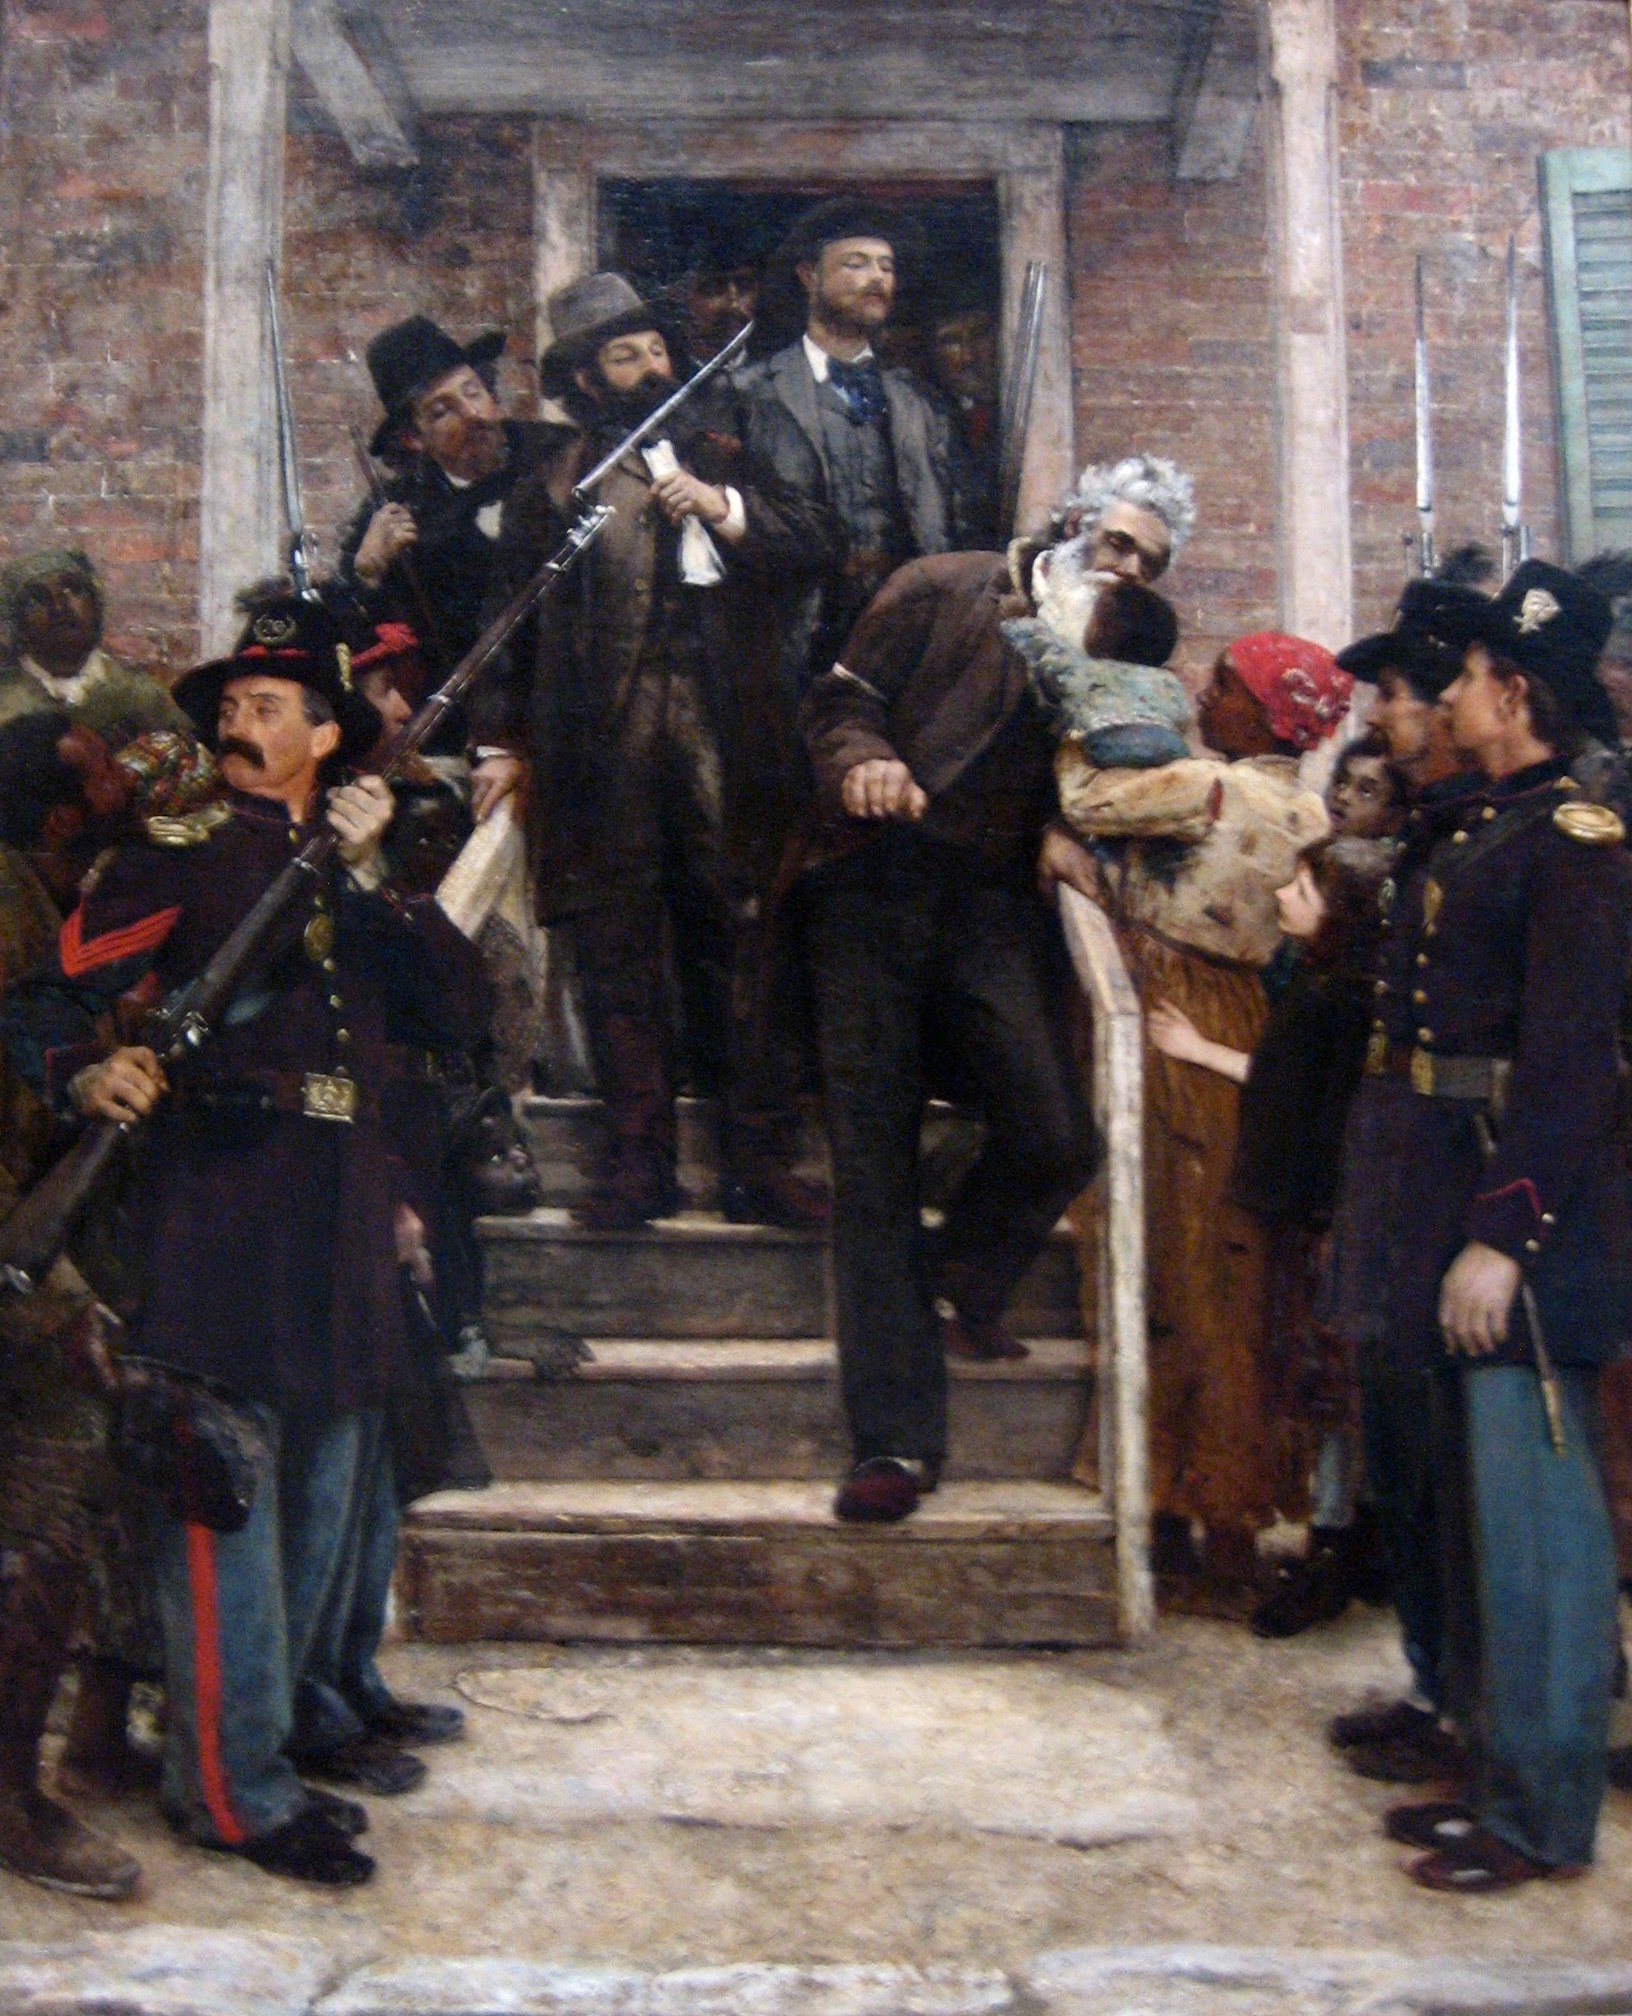 https://upload.wikimedia.org/wikipedia/commons/f/f2/%27The_Last_Moments_of_John_Brown%27%2C_oil_on_canvas_painting_by_Thomas_Hovenden.jpg